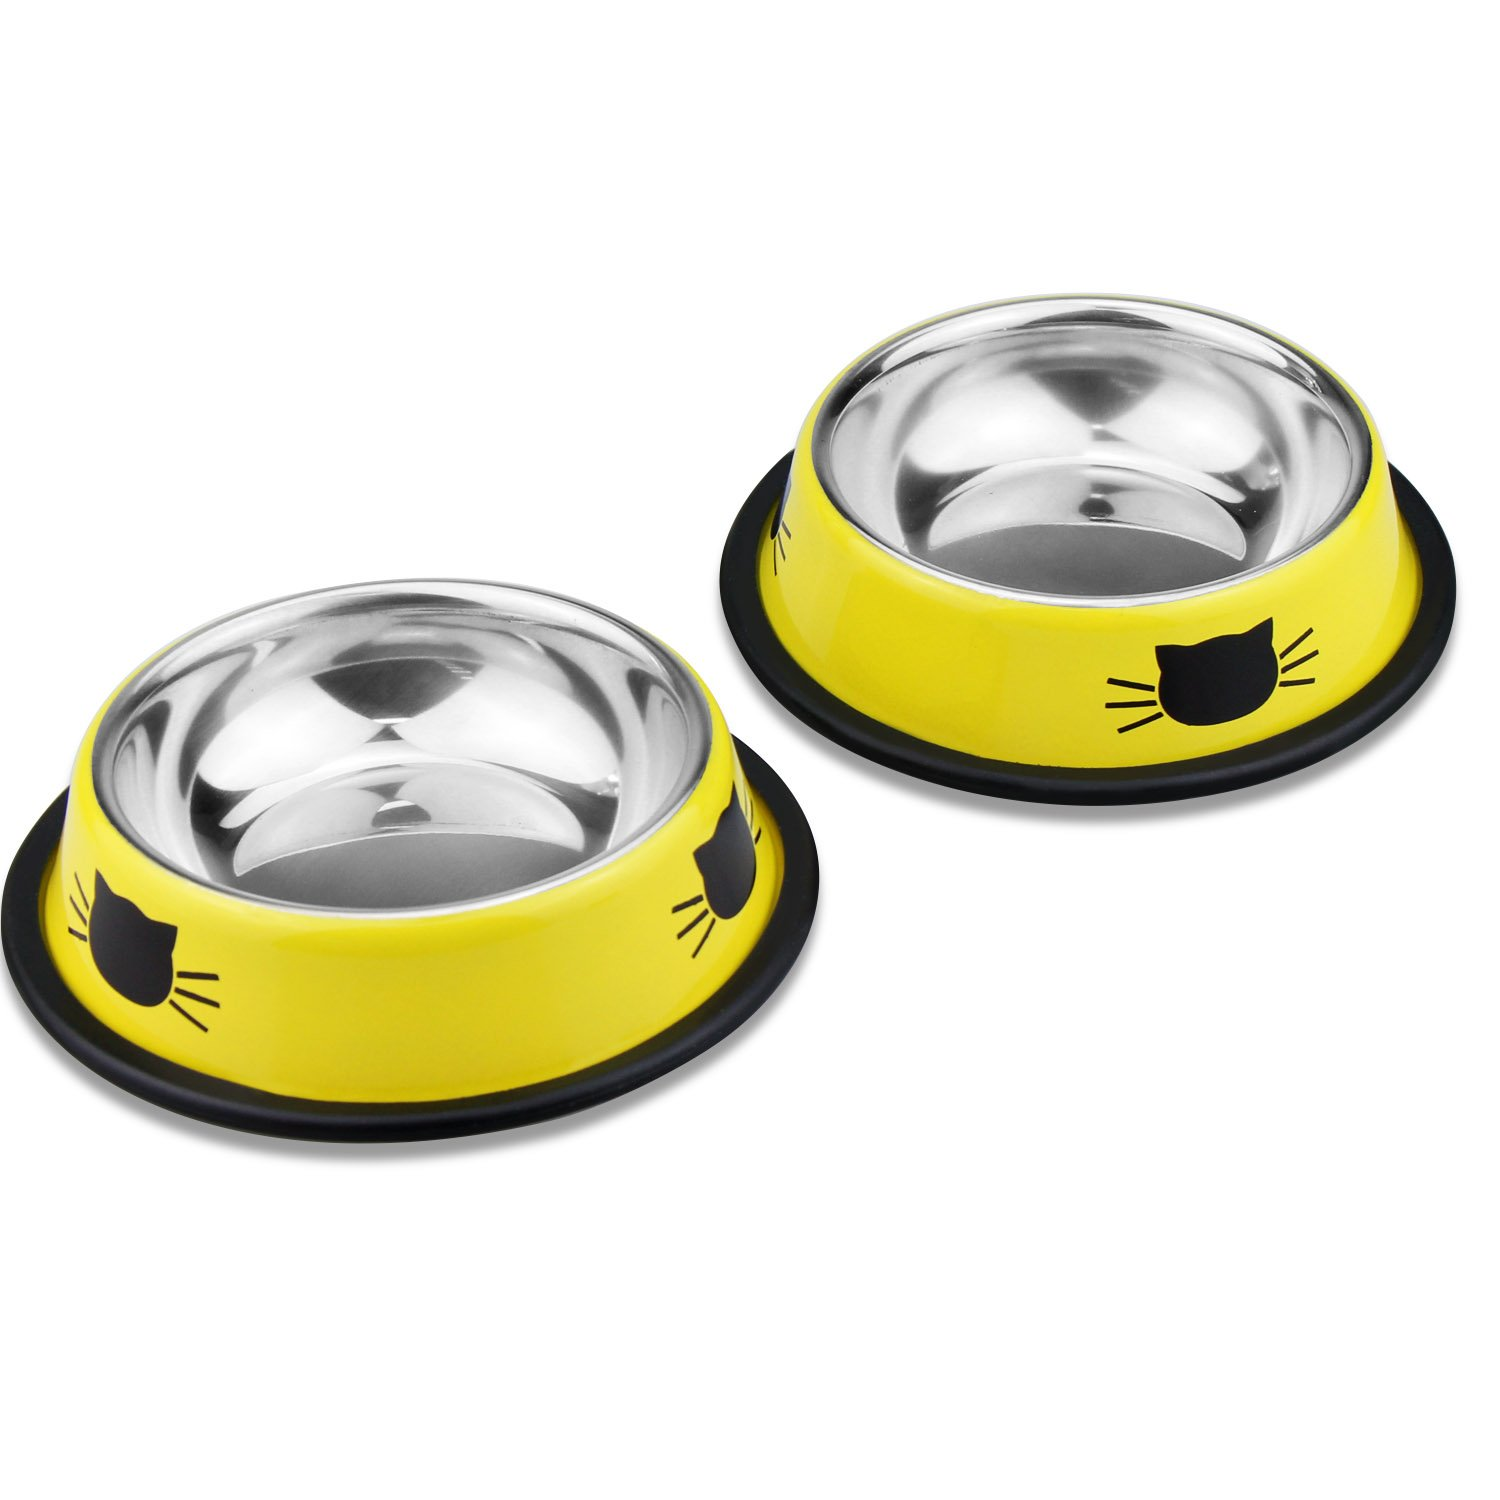 Comsmart Stainless Steel Pet Cat Bowl Kitten Puppy Dish Bowl with Cute Cats Painted Non-Skid for Small Dogs Cats Animals (Set of 2) (Yellow/Yellow) by Comsmart (Image #9)